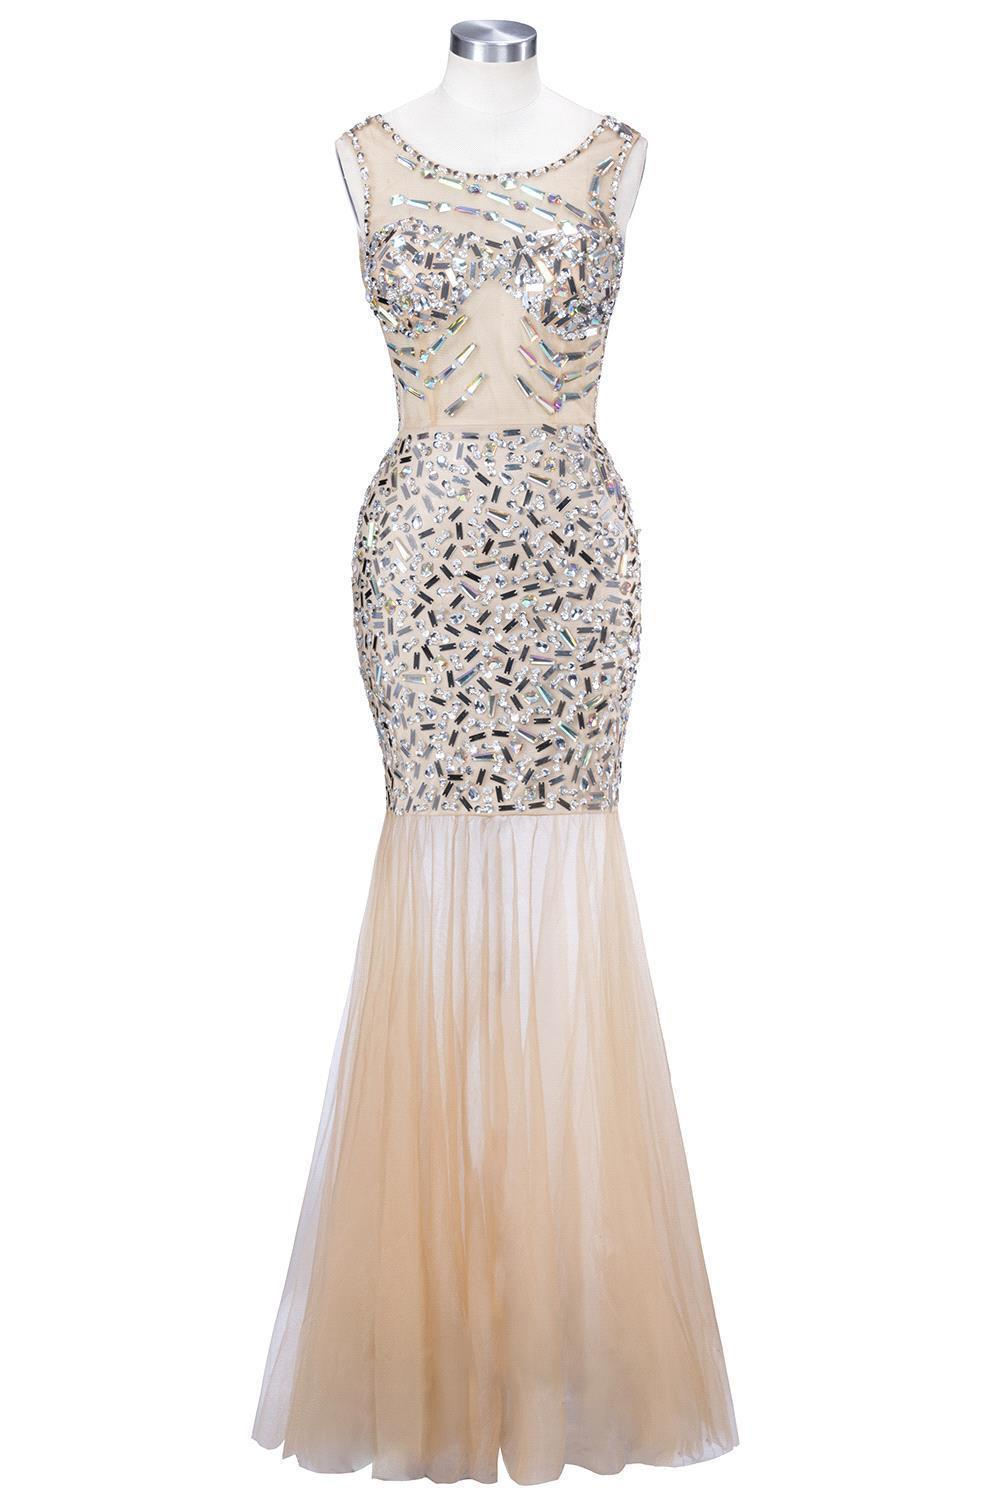 Champagne Backless Sleeveless   Evening     Dresses   Long With Luxury Beaded Mermaid   Evening   Gowns For Women Tulle Formal   Dress